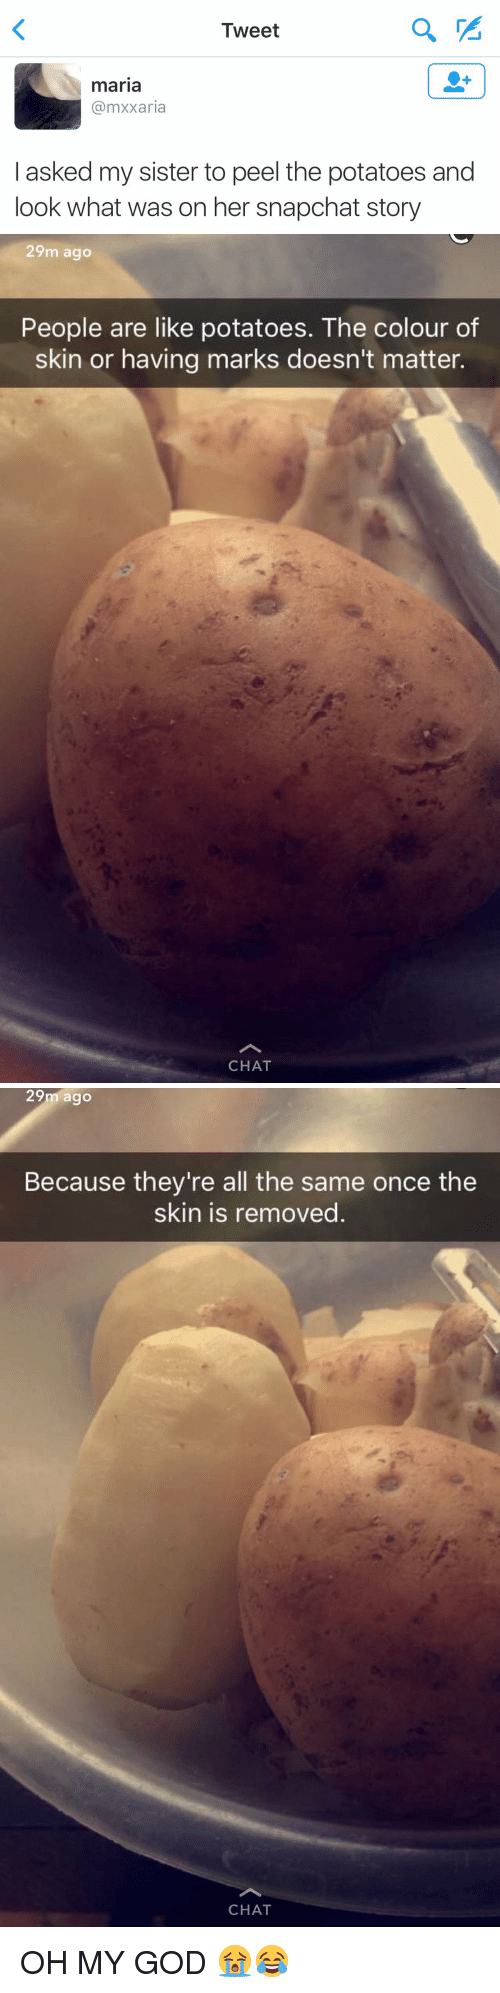 Cã§: Tweet  maria  Ca mxxaria  asked my sister to peel the potatoes and  look what was on her snapchat story   29m ago  People are like potatoes. The colour of  skin or having marks doesn't matter.  CHAT   29m ago  Because they're all the same once the  skin is removed  CHAT OH MY GOD 😭😂